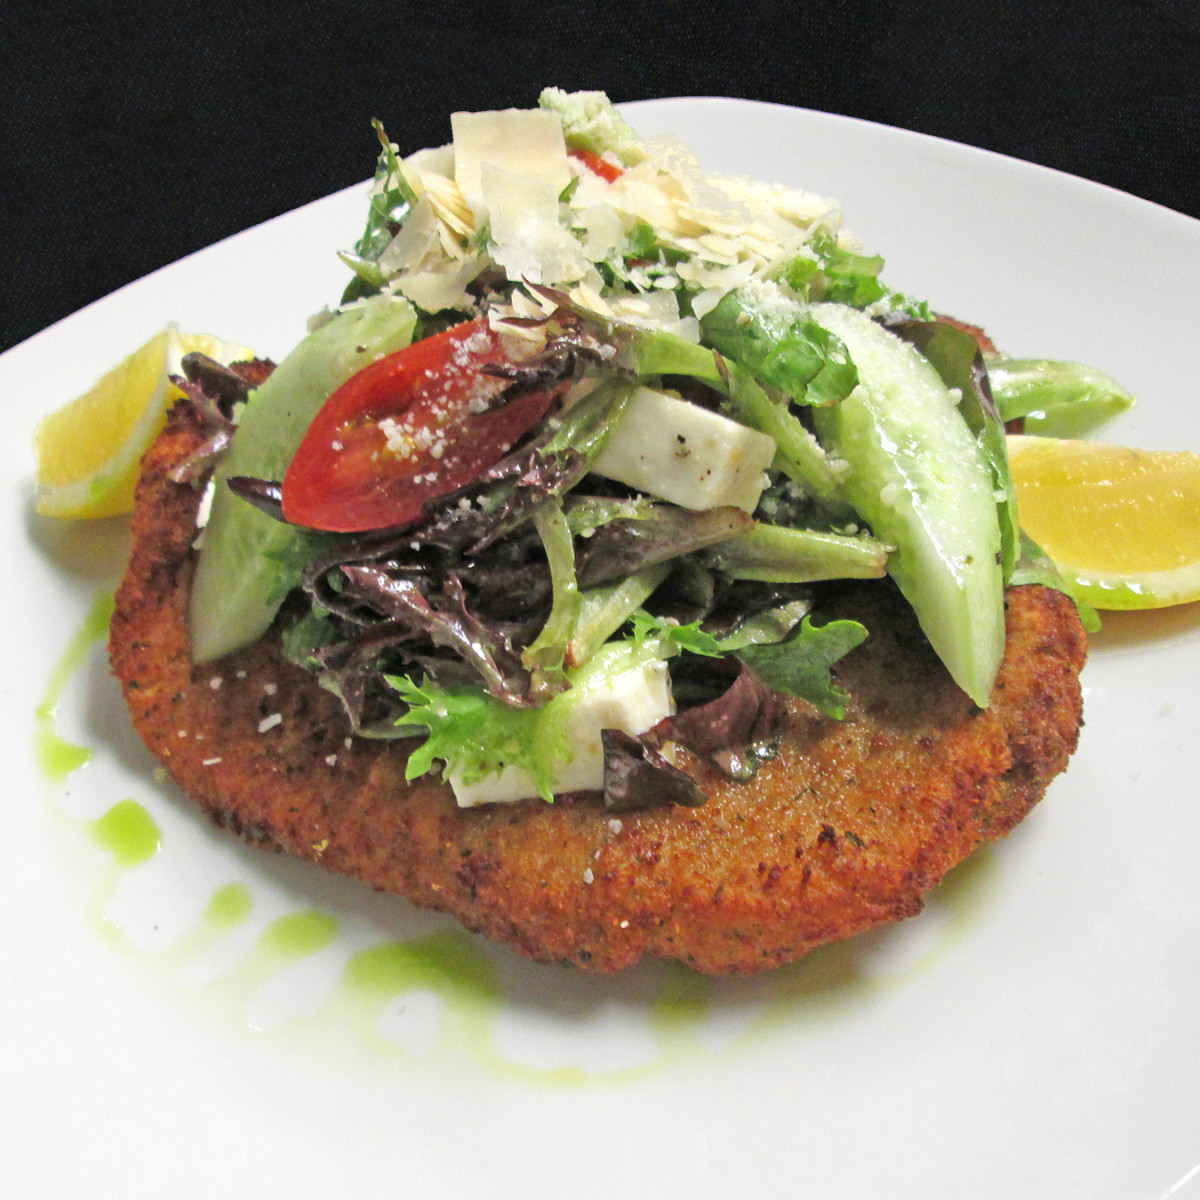 Woodlands American Grill chicken Milanese salad